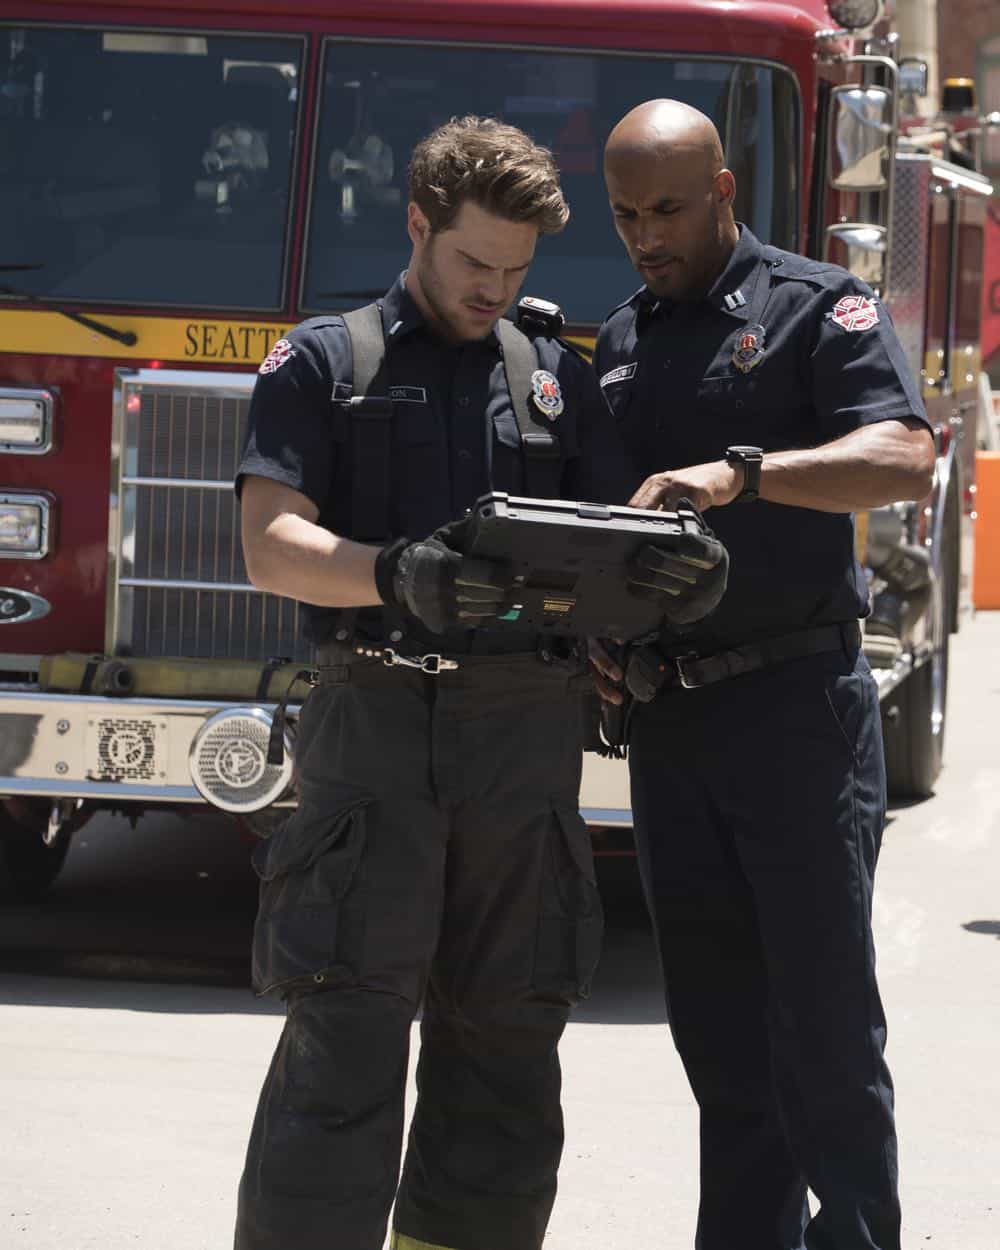 "STATION 19 - ""Under The Surface"" - It's a life-and-death situation when a young boy falls into water pipes beneath the city of Seattle. With the clock ticking, the firefighters of Station 19 jump into action to save his life, on ABC's ""Station 19,"" THURSDAY, OCT. 11 (9:01-10:00 p.m. EDT), on The ABC Television Network. (ABC/Eric McCandless) GREY DAMON, BORIS KODJOE"